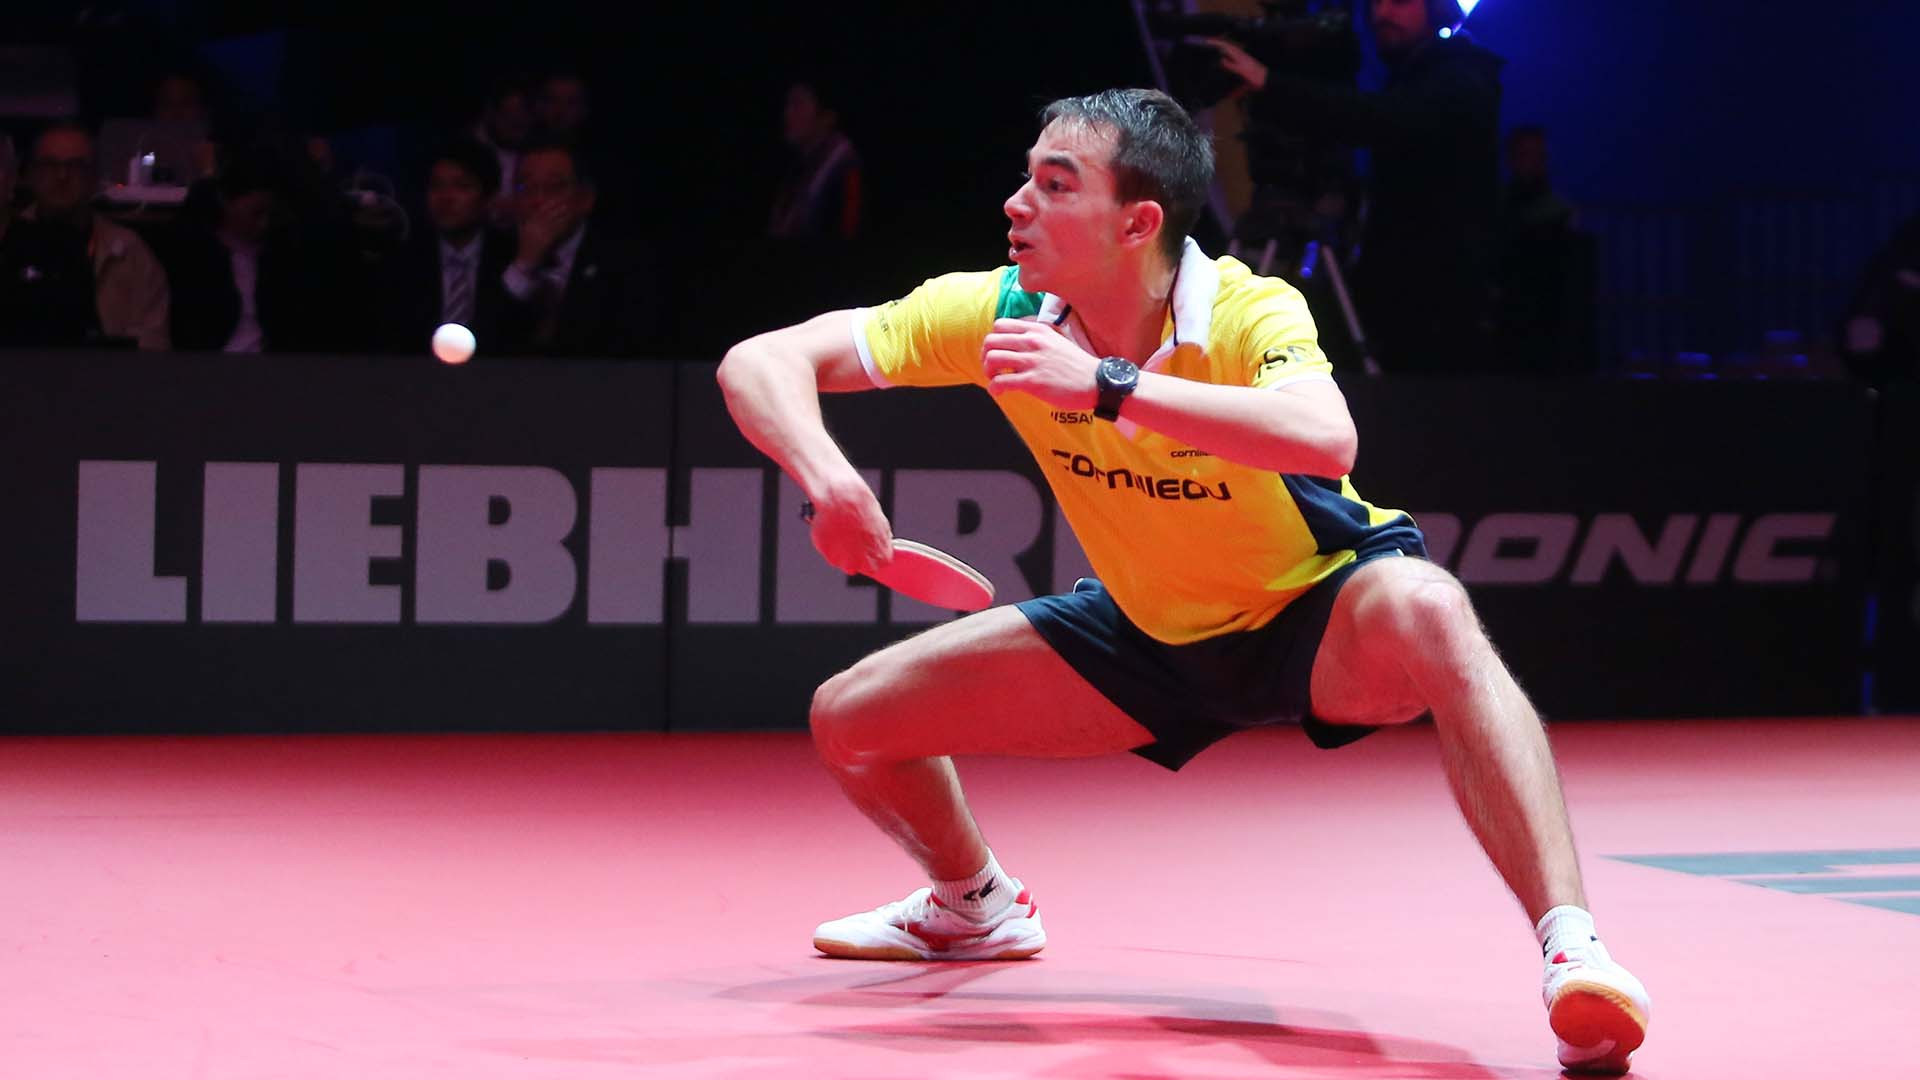 Calderano a casualty as ITTF Men's World Cup begins at Disneyland Paris